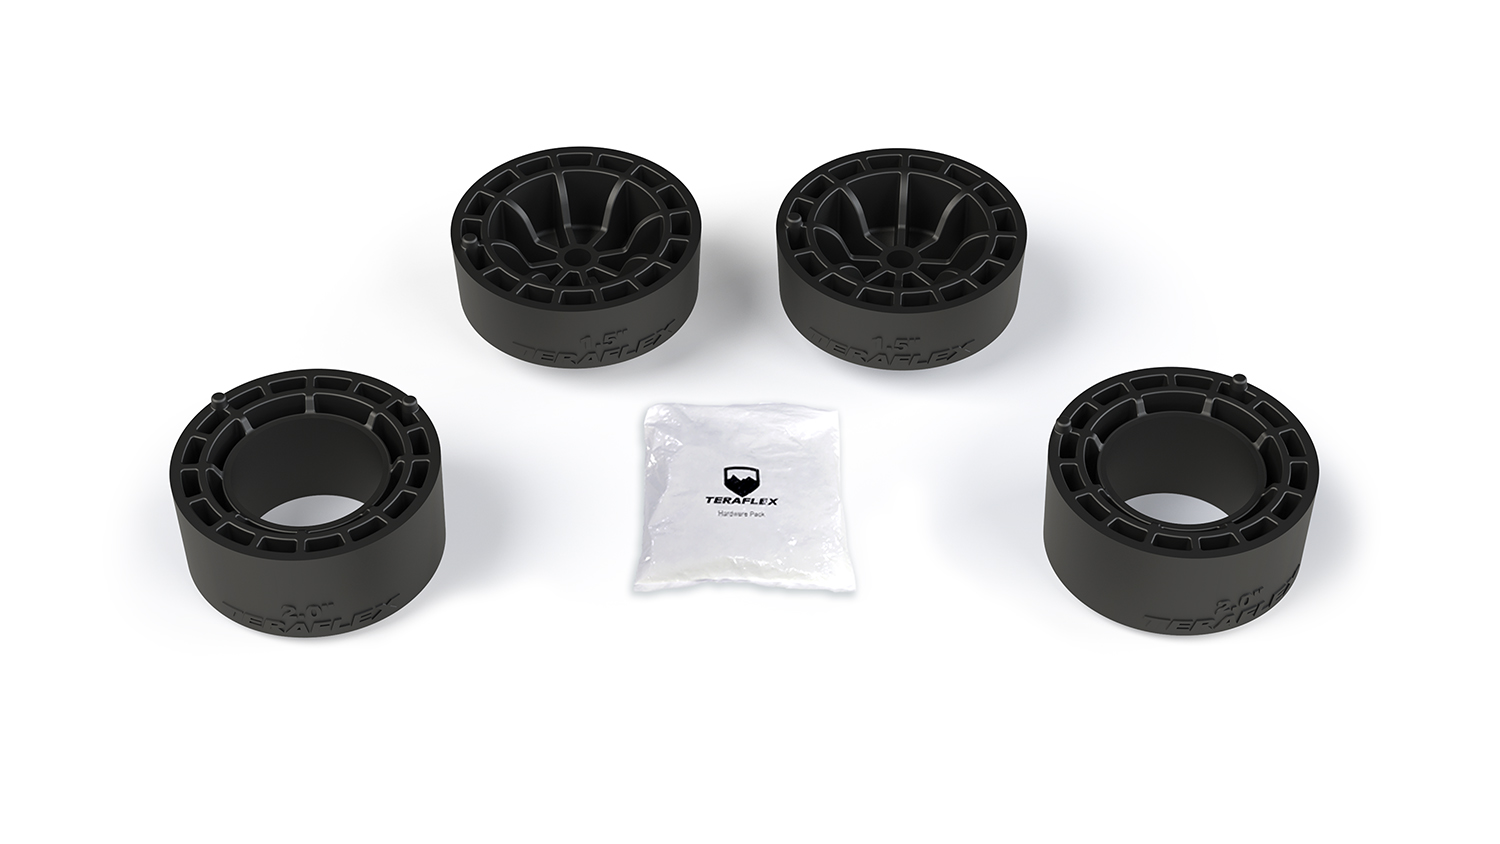 Teraflex 1.5in Performance Spacer Lift Kit - JL 4Dr